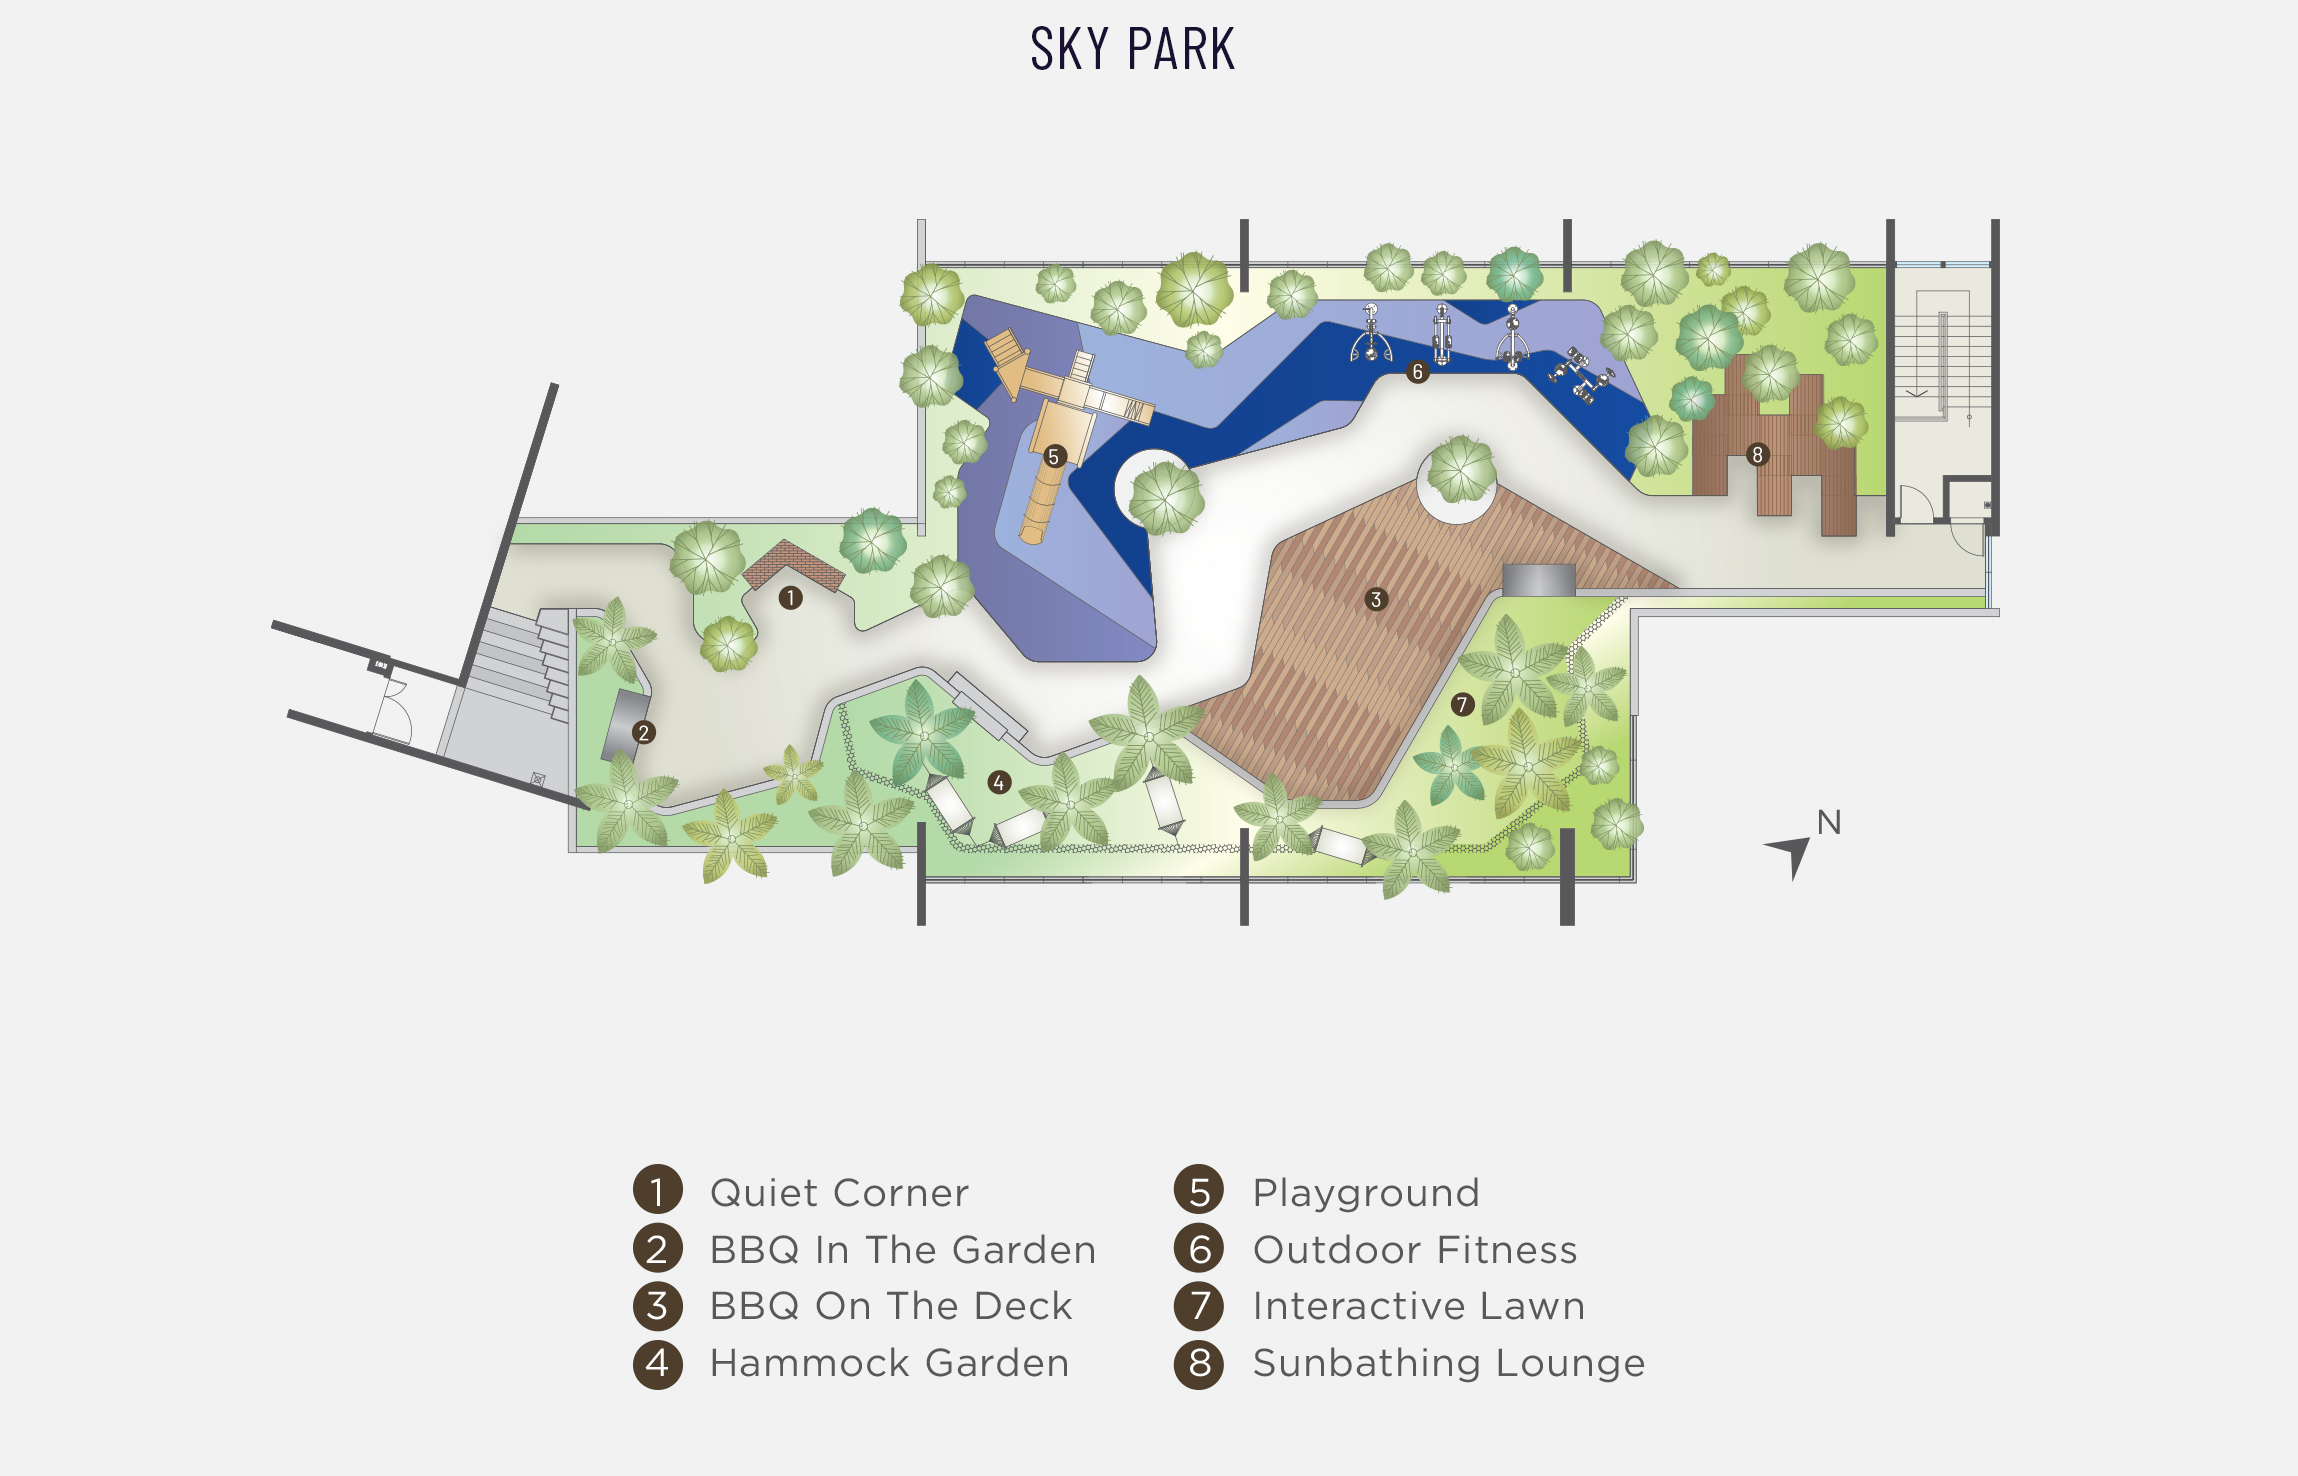 Level 38 plan of Alfa Bangsar that shows the Sky Park which includes the Quiet Corner, BBQ in the Garden, BBQ on the Deck, hammock garden, playground, outdoor fitness, interactive lawn, sunbathing lounge.